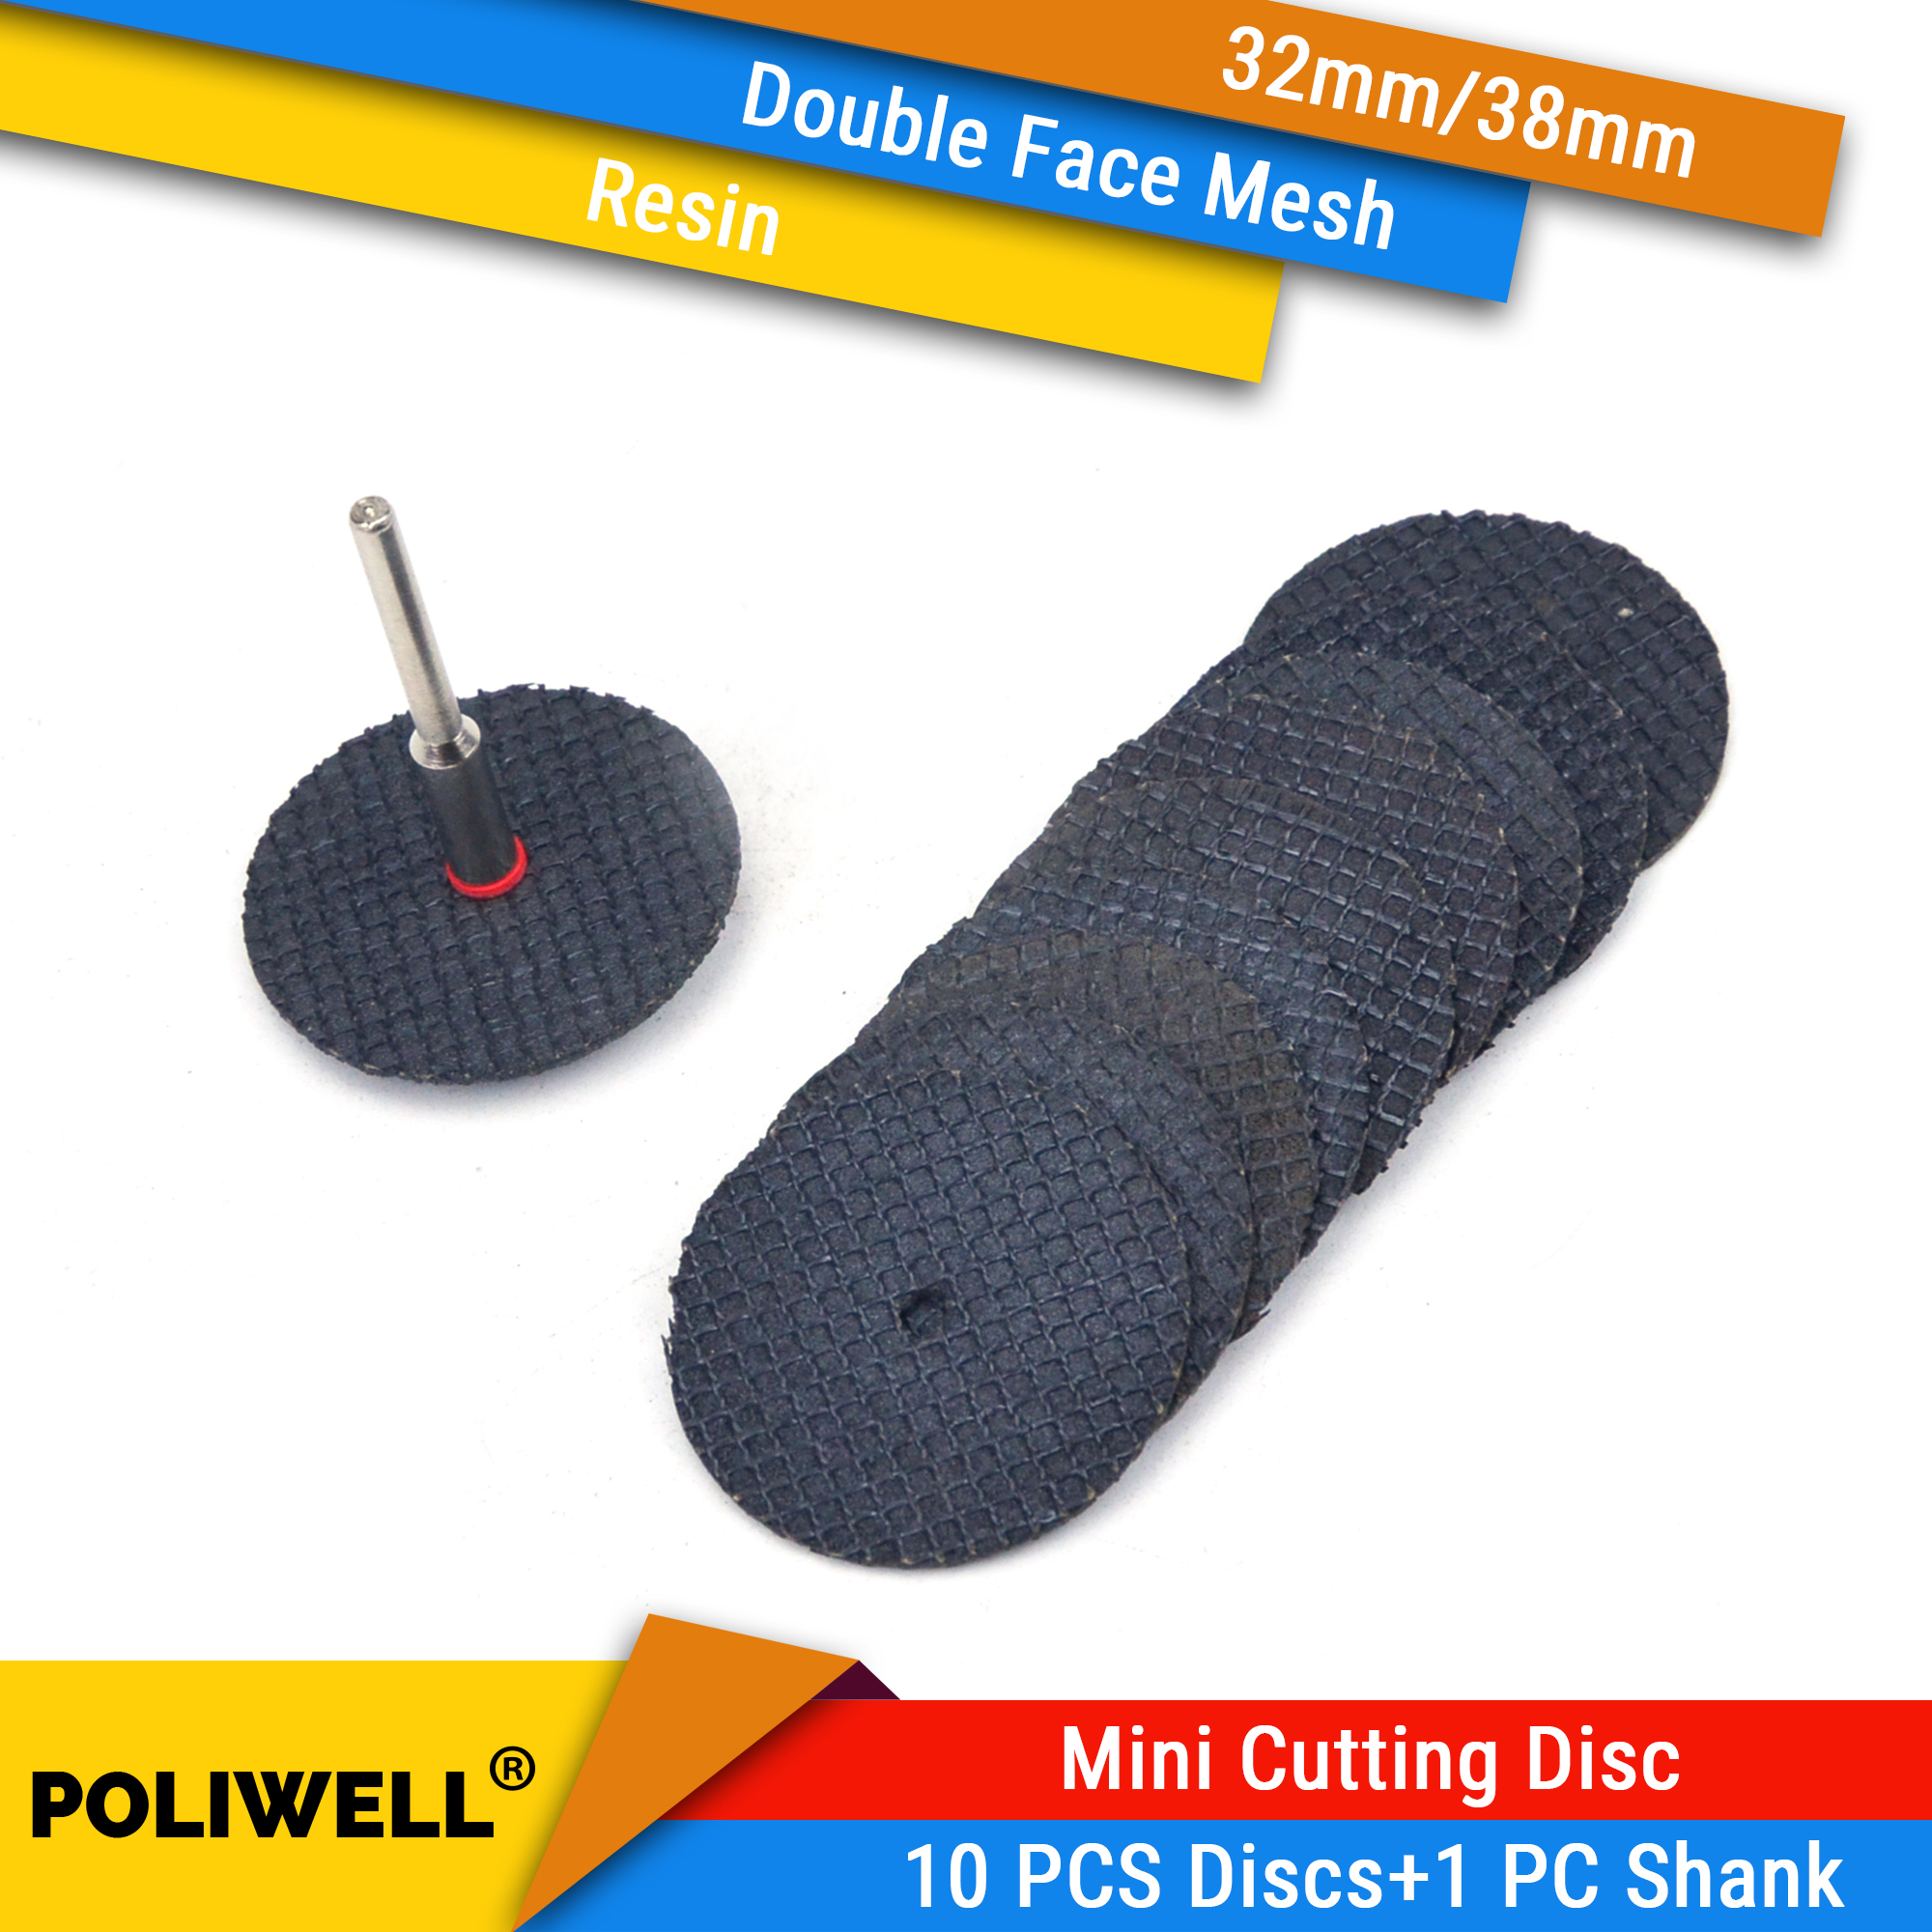 10Pcs Double-Face Mesh Cutting Disc + 1Pc 3mm Shank Resin Mini Circular Saw Blade For Soft Metal Wood Cutting Fits Dremel Tools